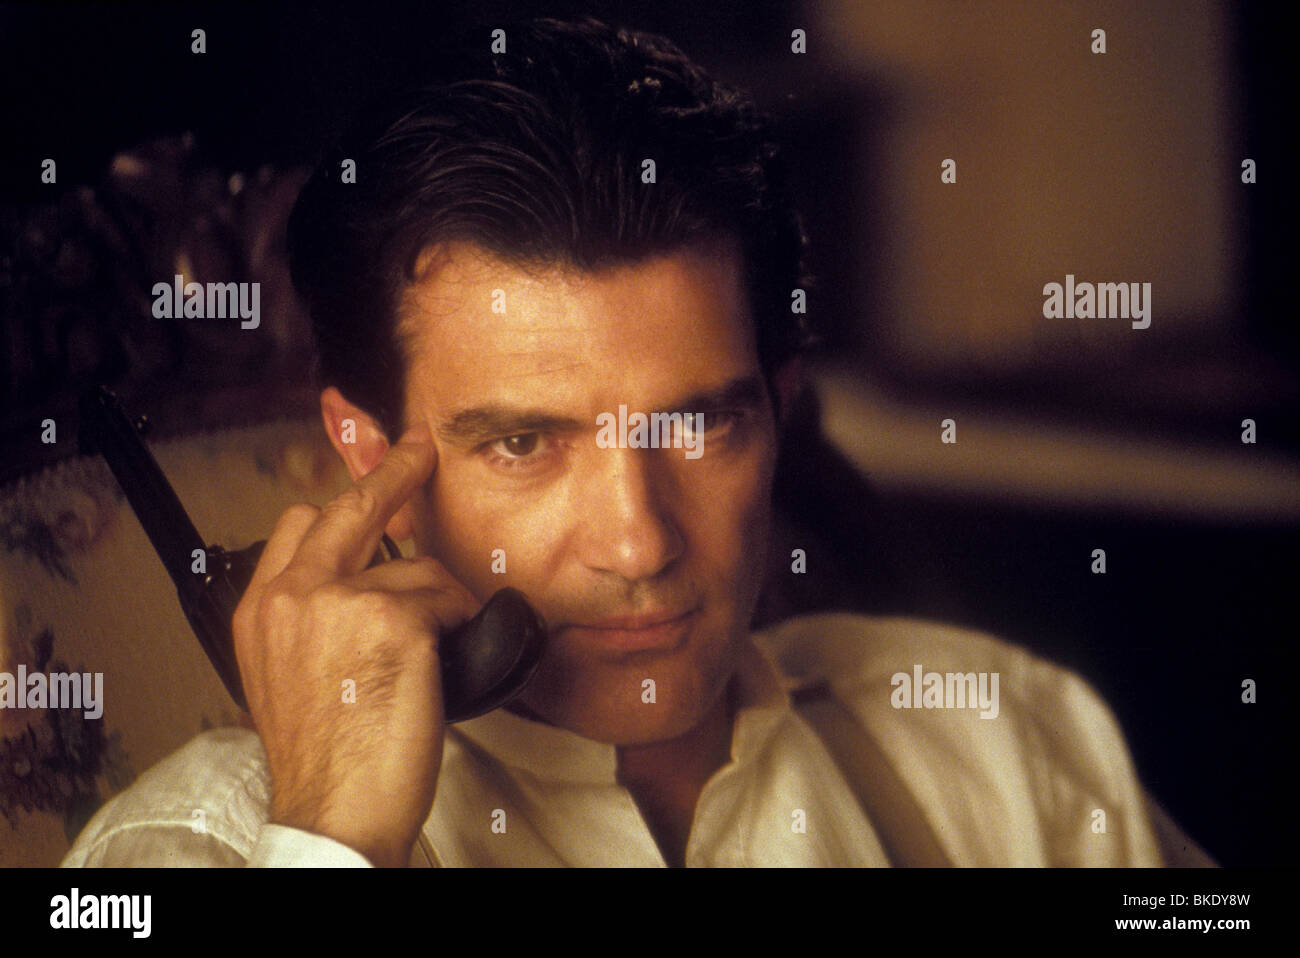 ORIGINAL SIN (2001) ANTONIO BANDERAS ORIS 023 Stock Photo